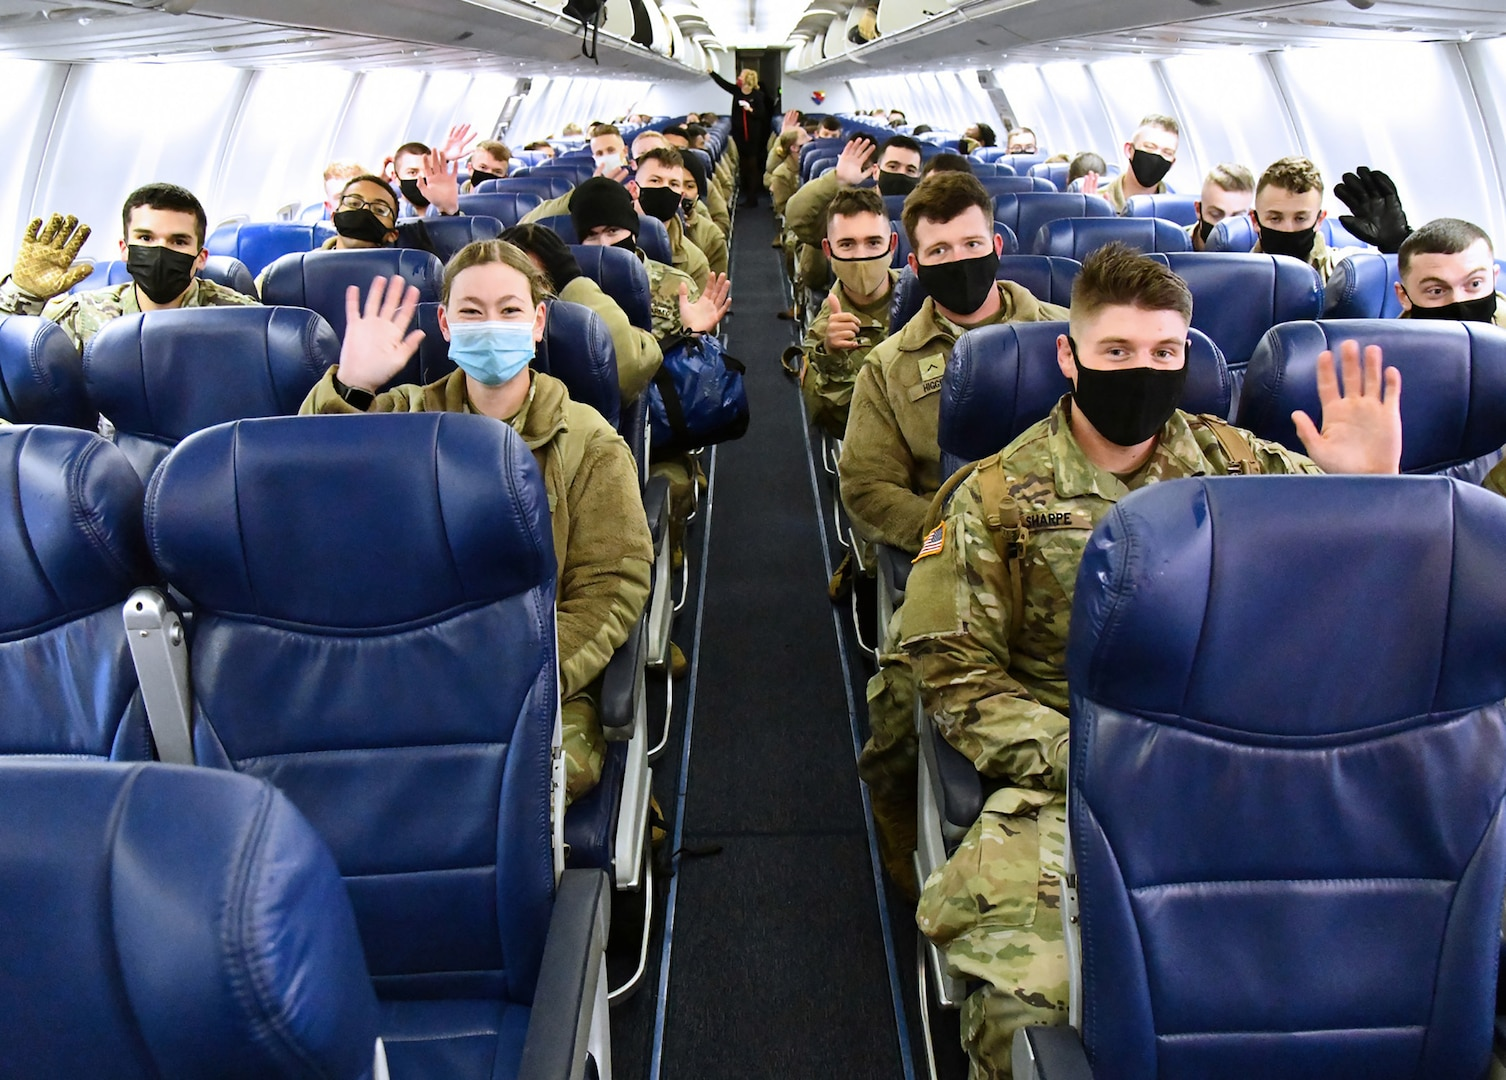 U.S. Army Medical Center of Excellence Advanced Individual Training Soldiers wave once aboard a contract airplane at Joint Base San Antonio-Kelly Field Annex that will take them to their first duty assignment.